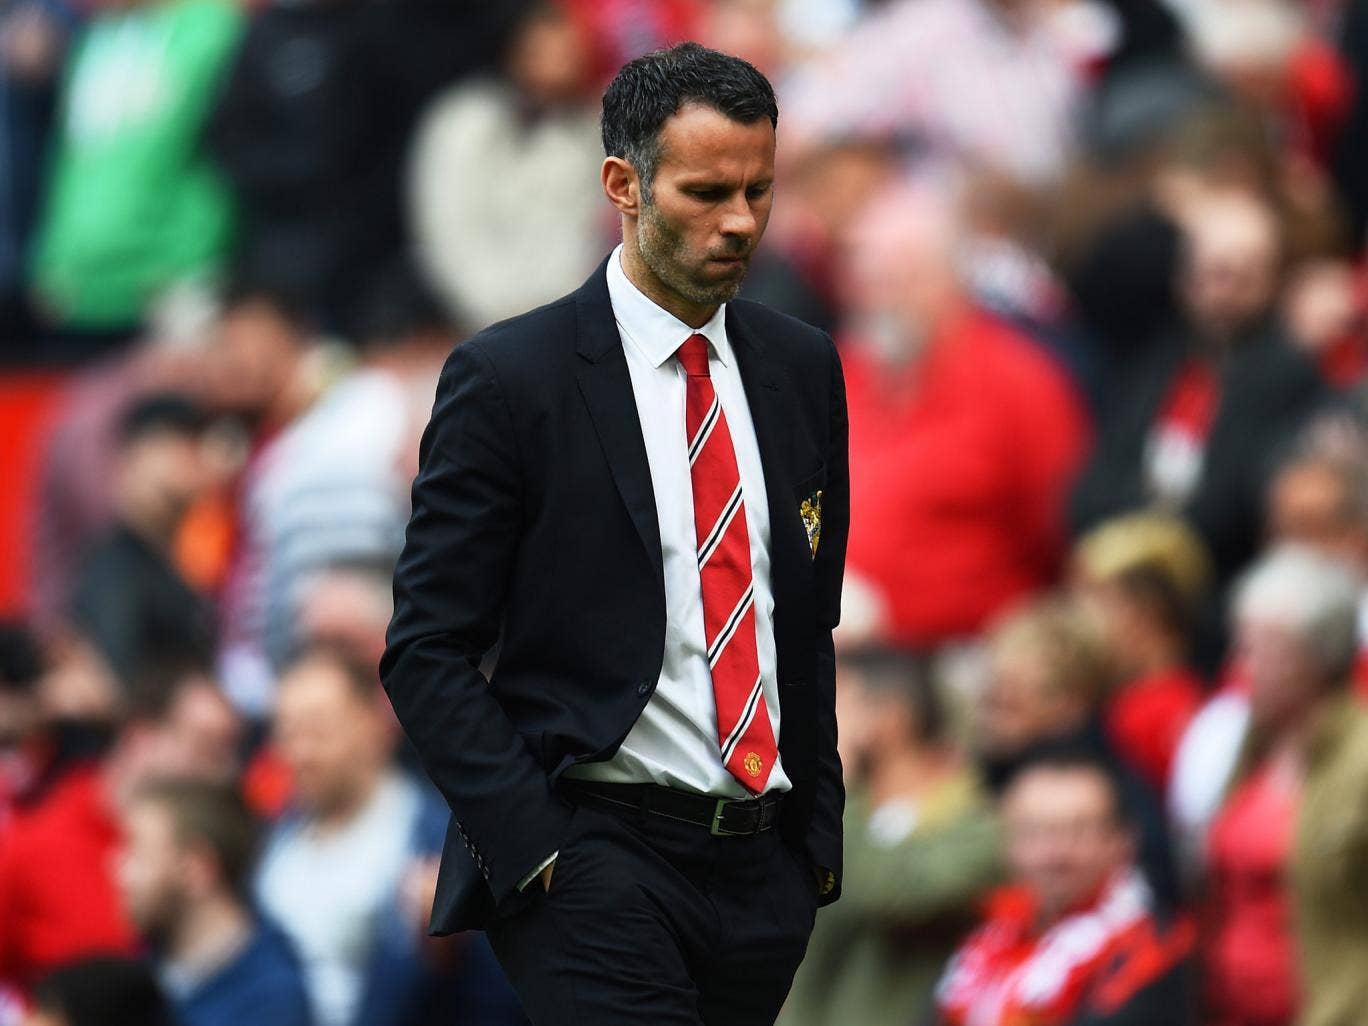 Ryan Giggs pictured after Manchester United's 1-0 defeat to Sunderland at Old Trafford